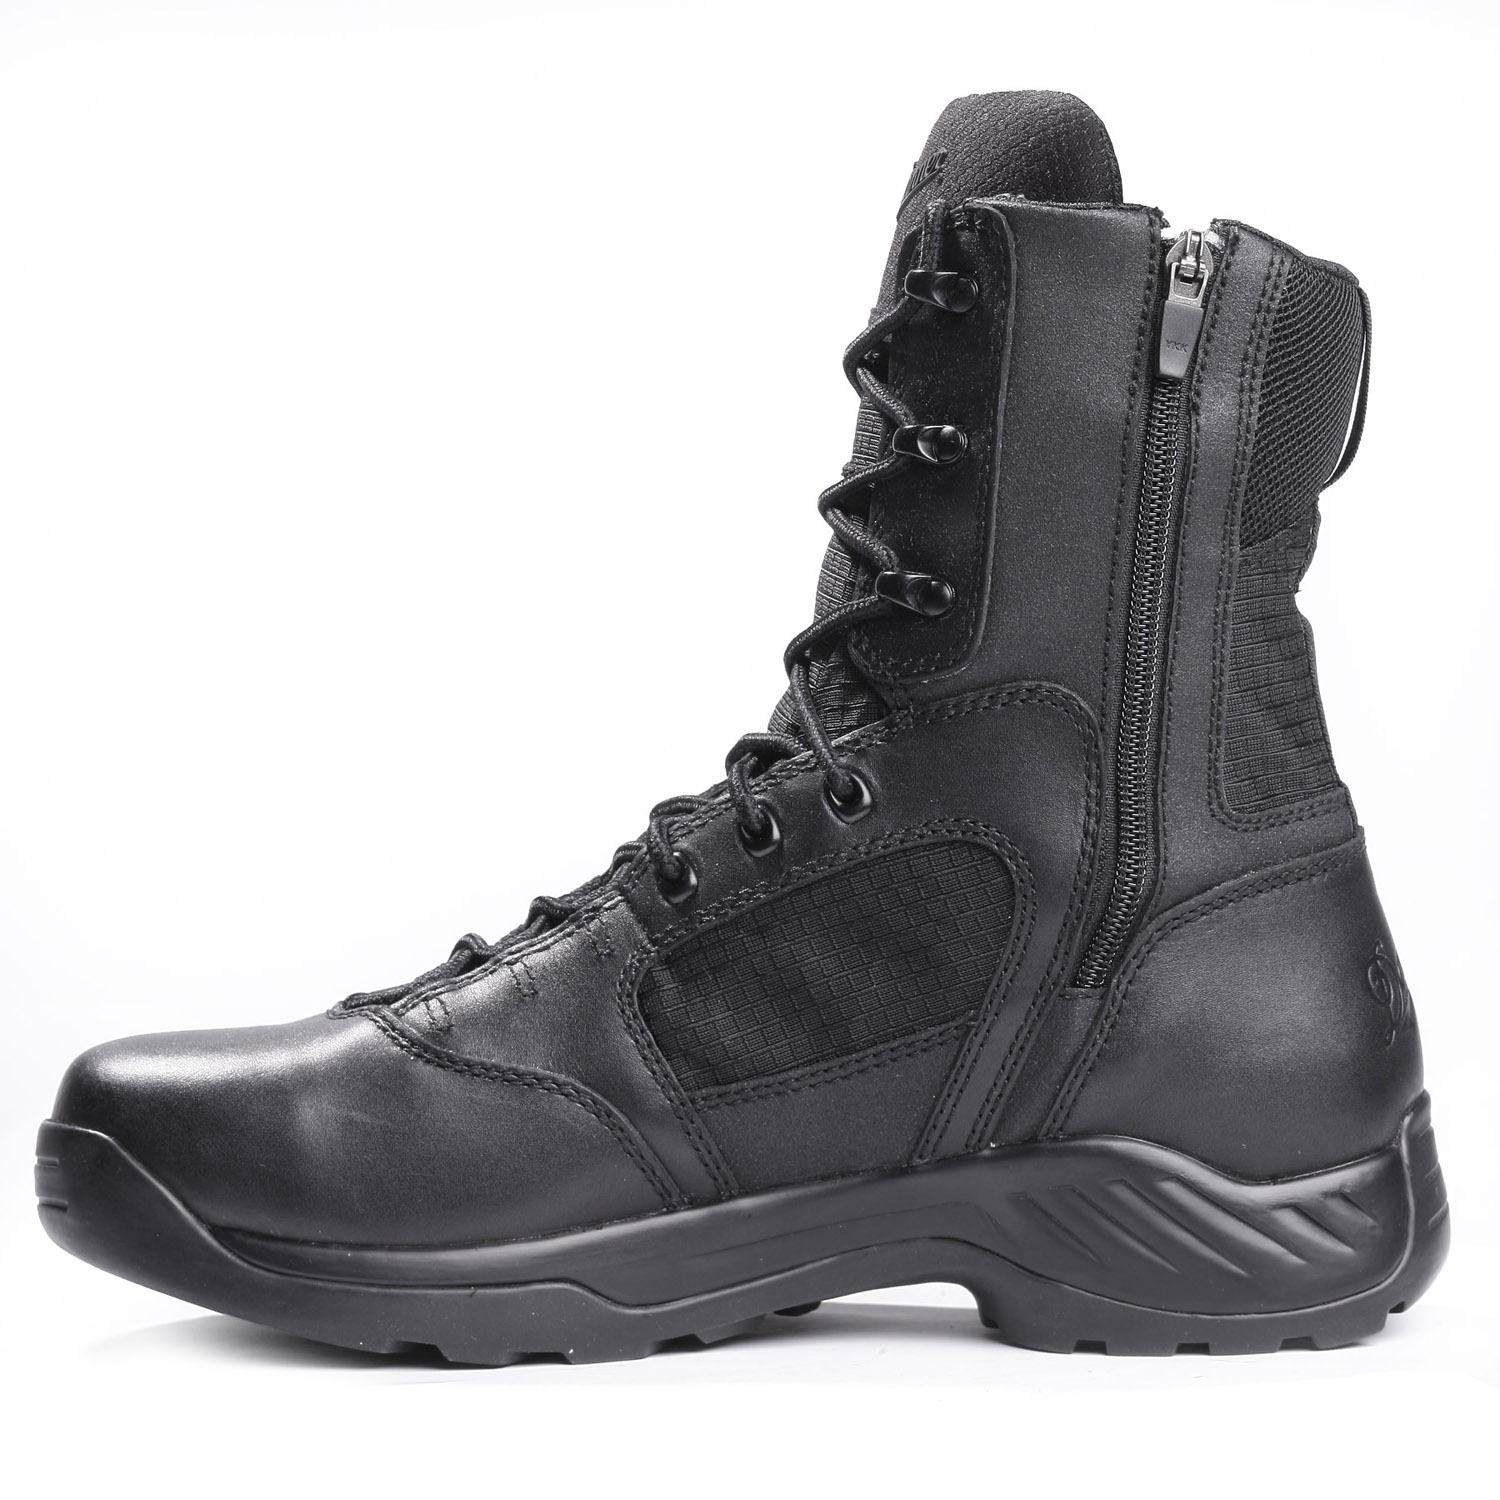 Danner Kinetic Waterproof Side Zip 8 Inch Duty Boots At Galls